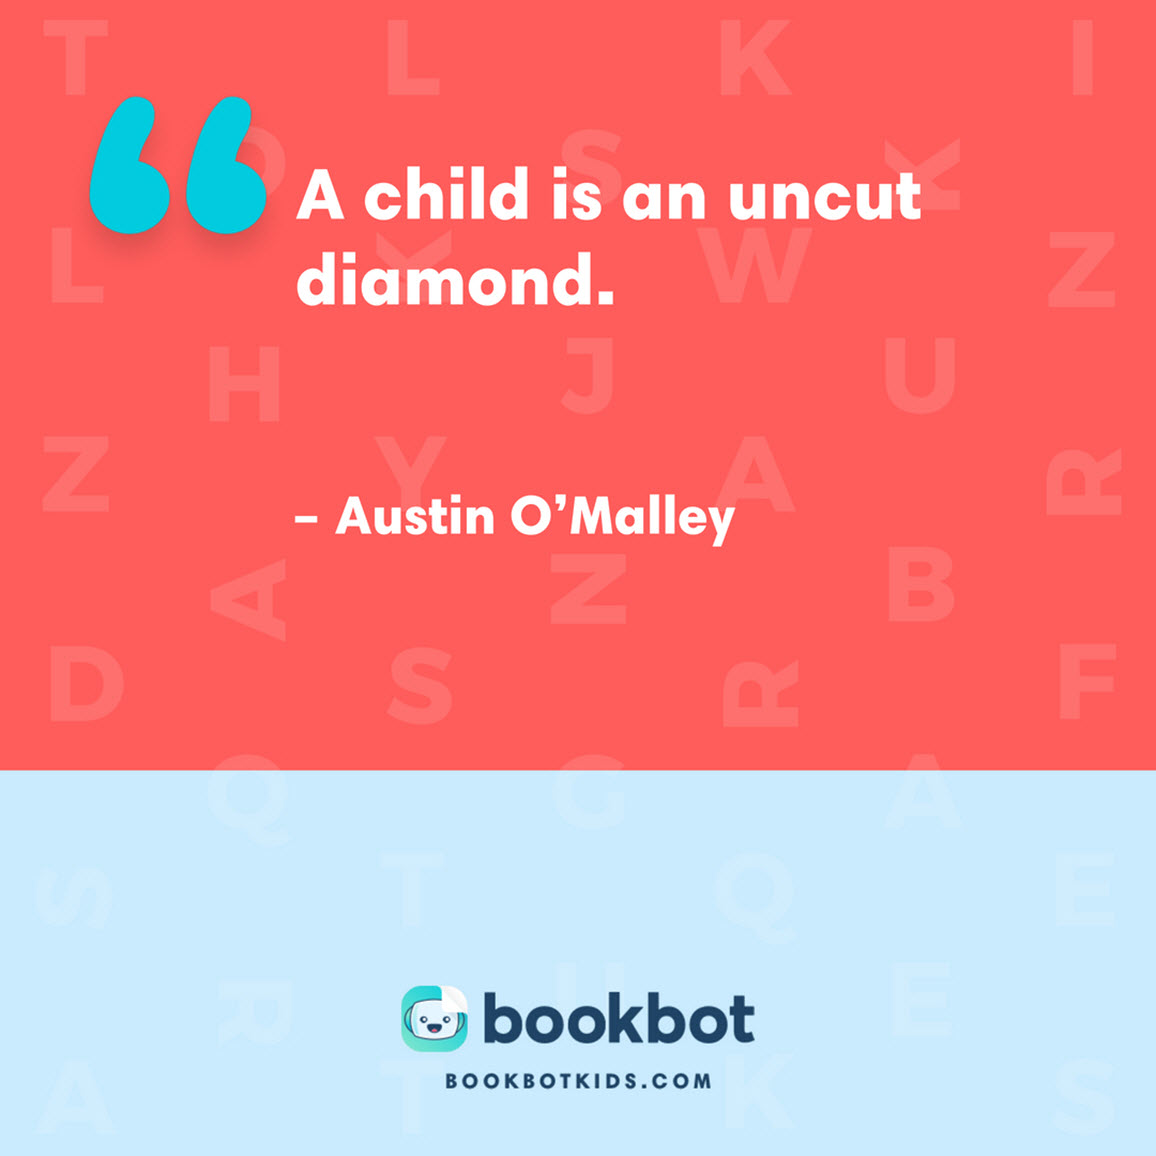 A child is an uncut diamond. – Austin O'Malley